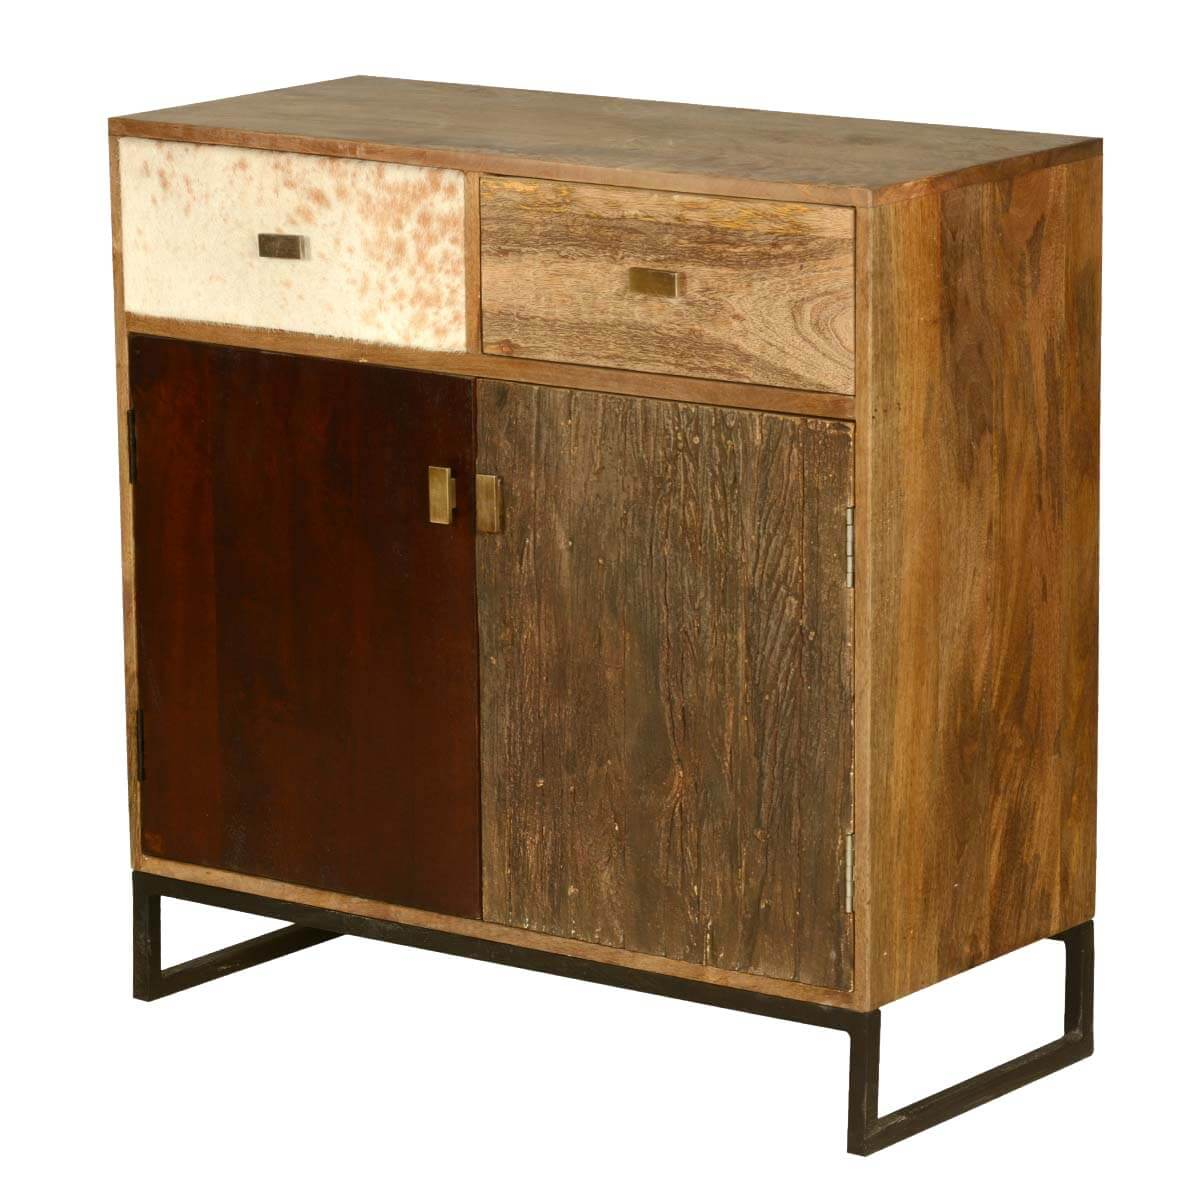 60's Retro Mango Wood Free Standing Kitchen Cabinet Mini Buffet. Full resolution‎  file, nominally Width 1200 Height 1200 pixels, file with #B78414.